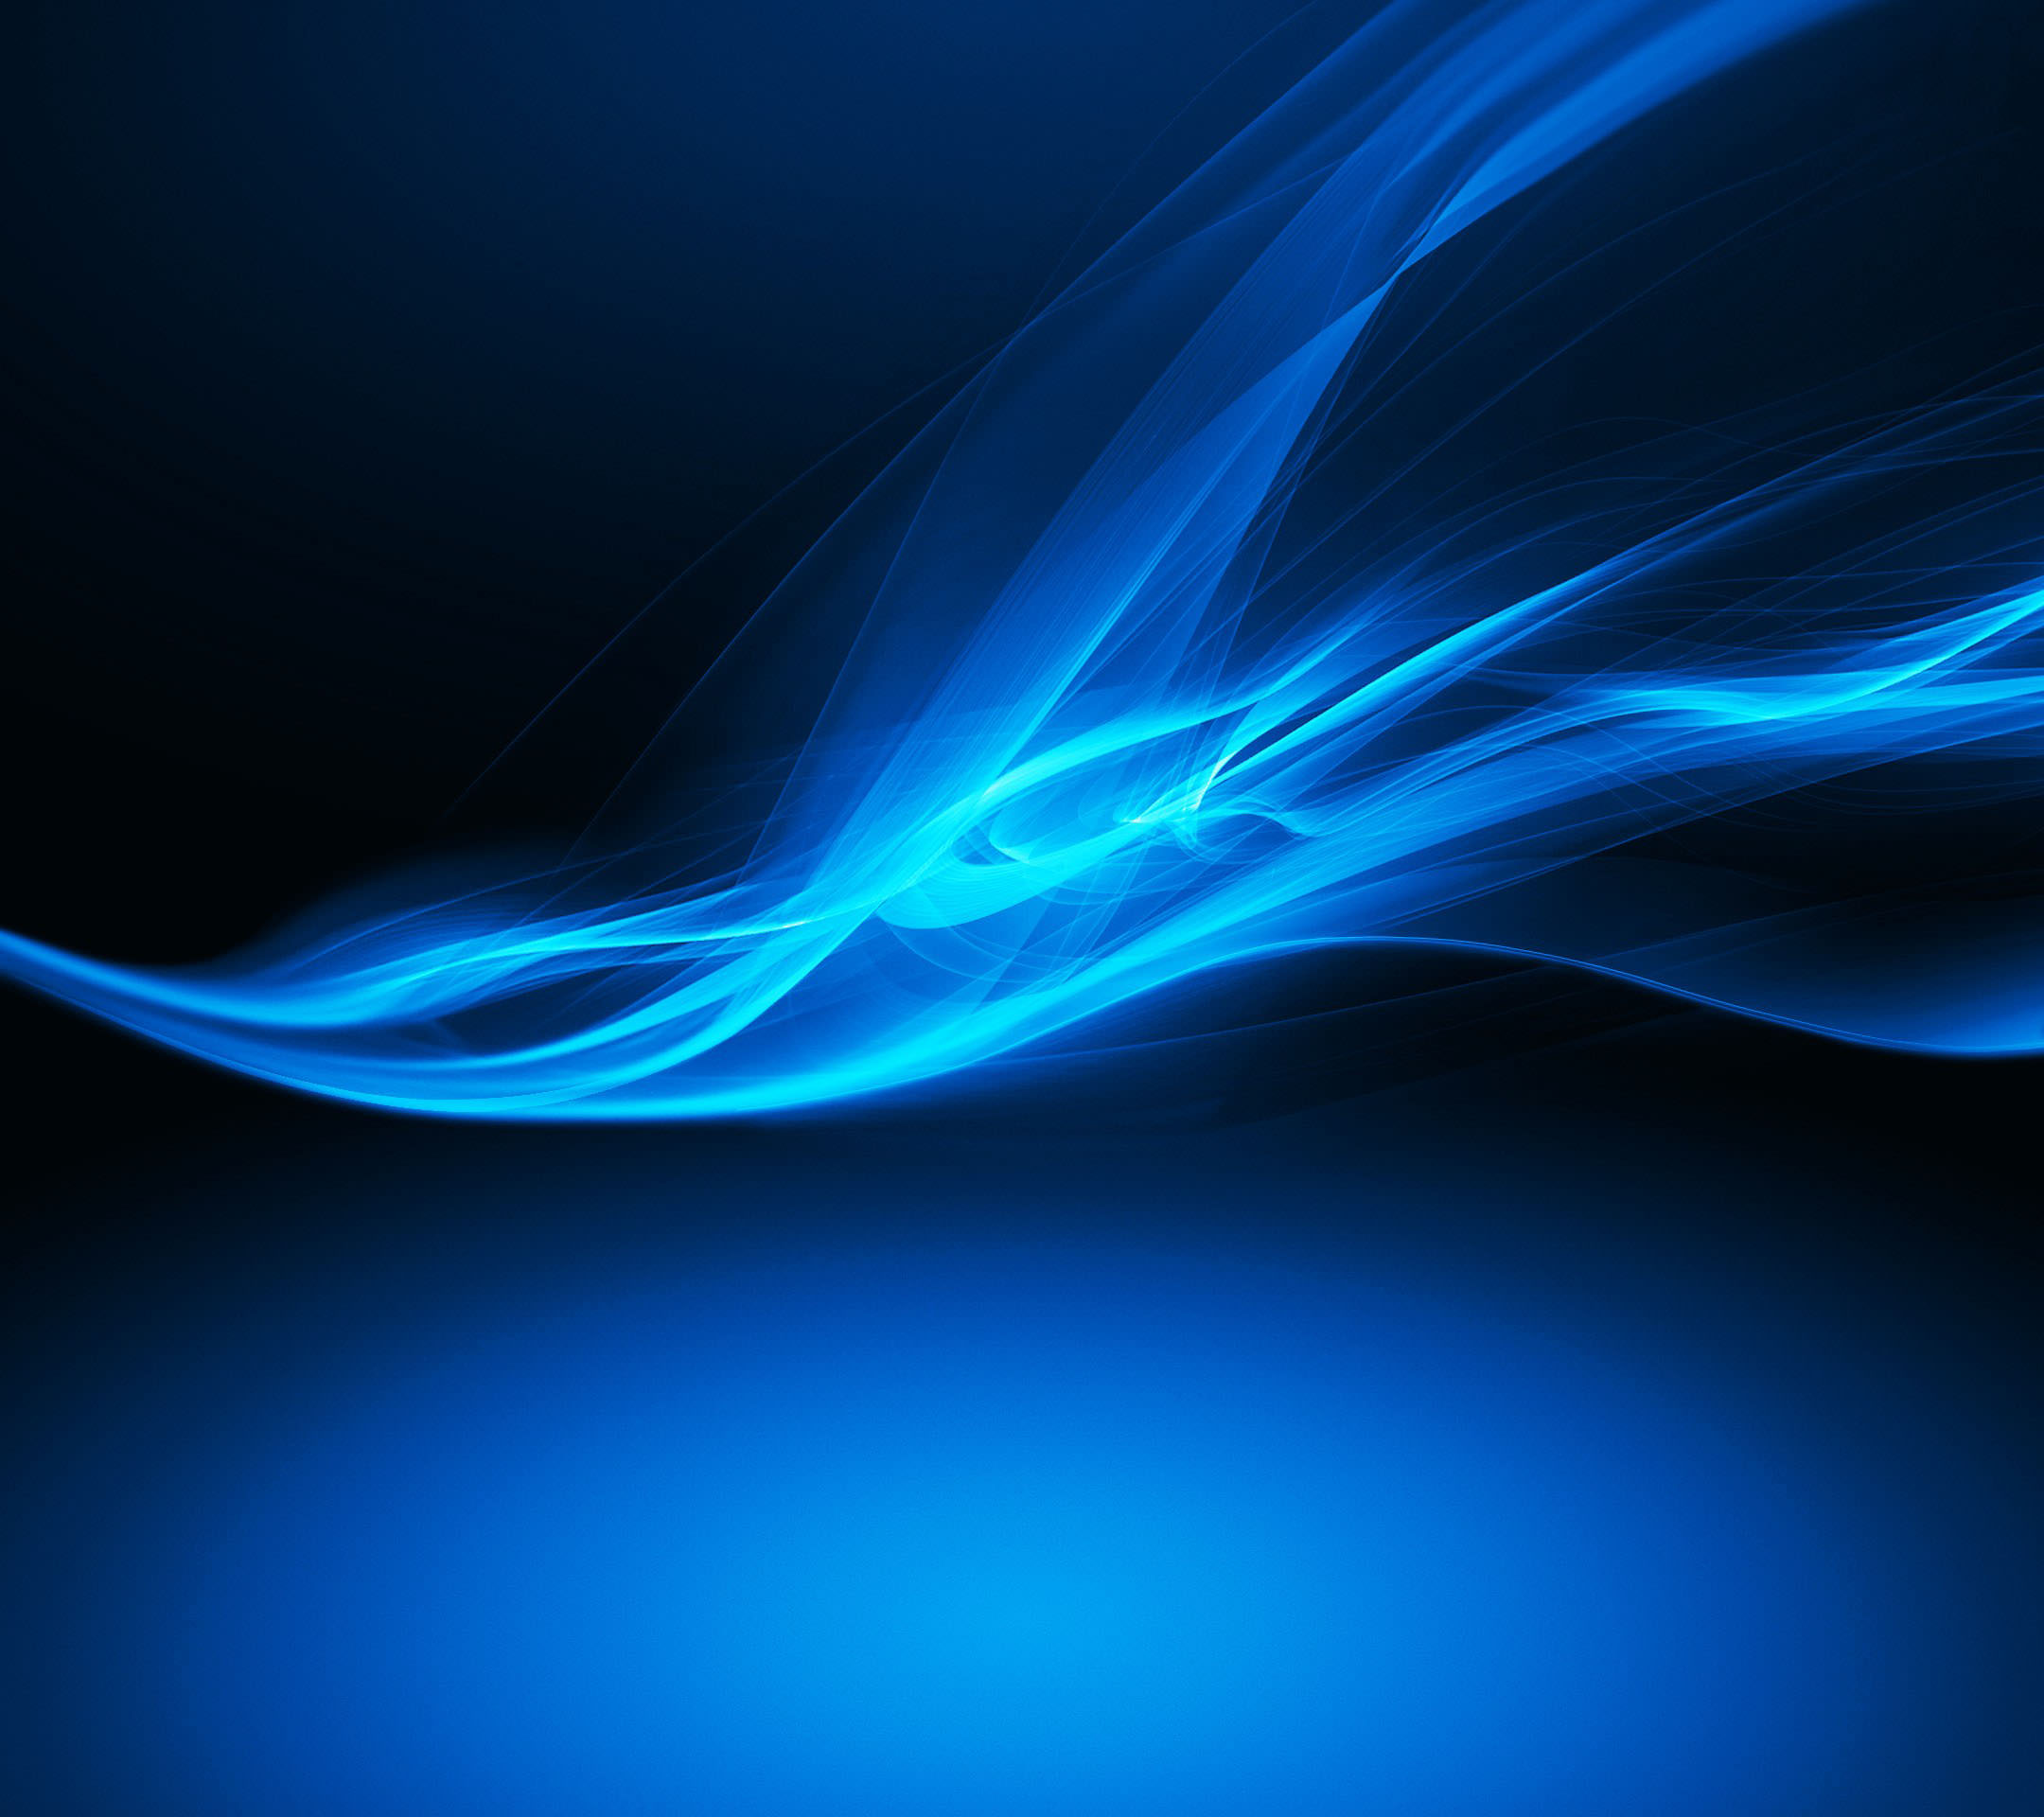 Sony Xperia Z Wallpaper Blue 2160x19 Download Hd Wallpaper Wallpapertip